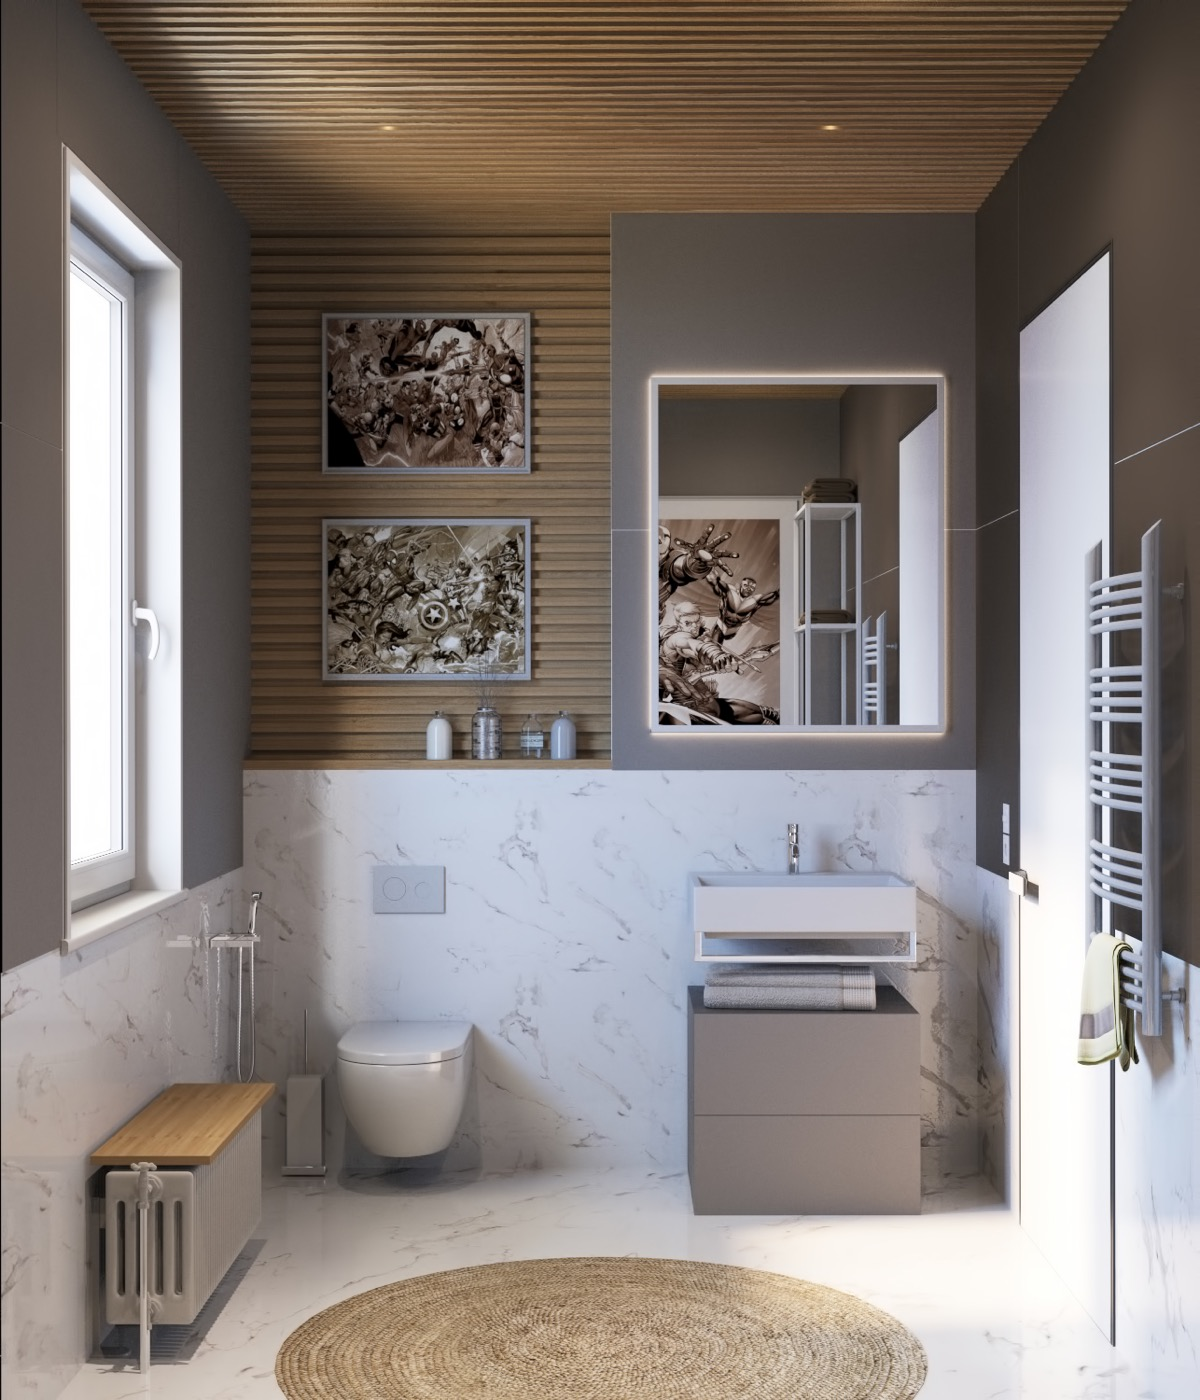 40 Modern Bathroom Vanities That Overflow With Style images 21